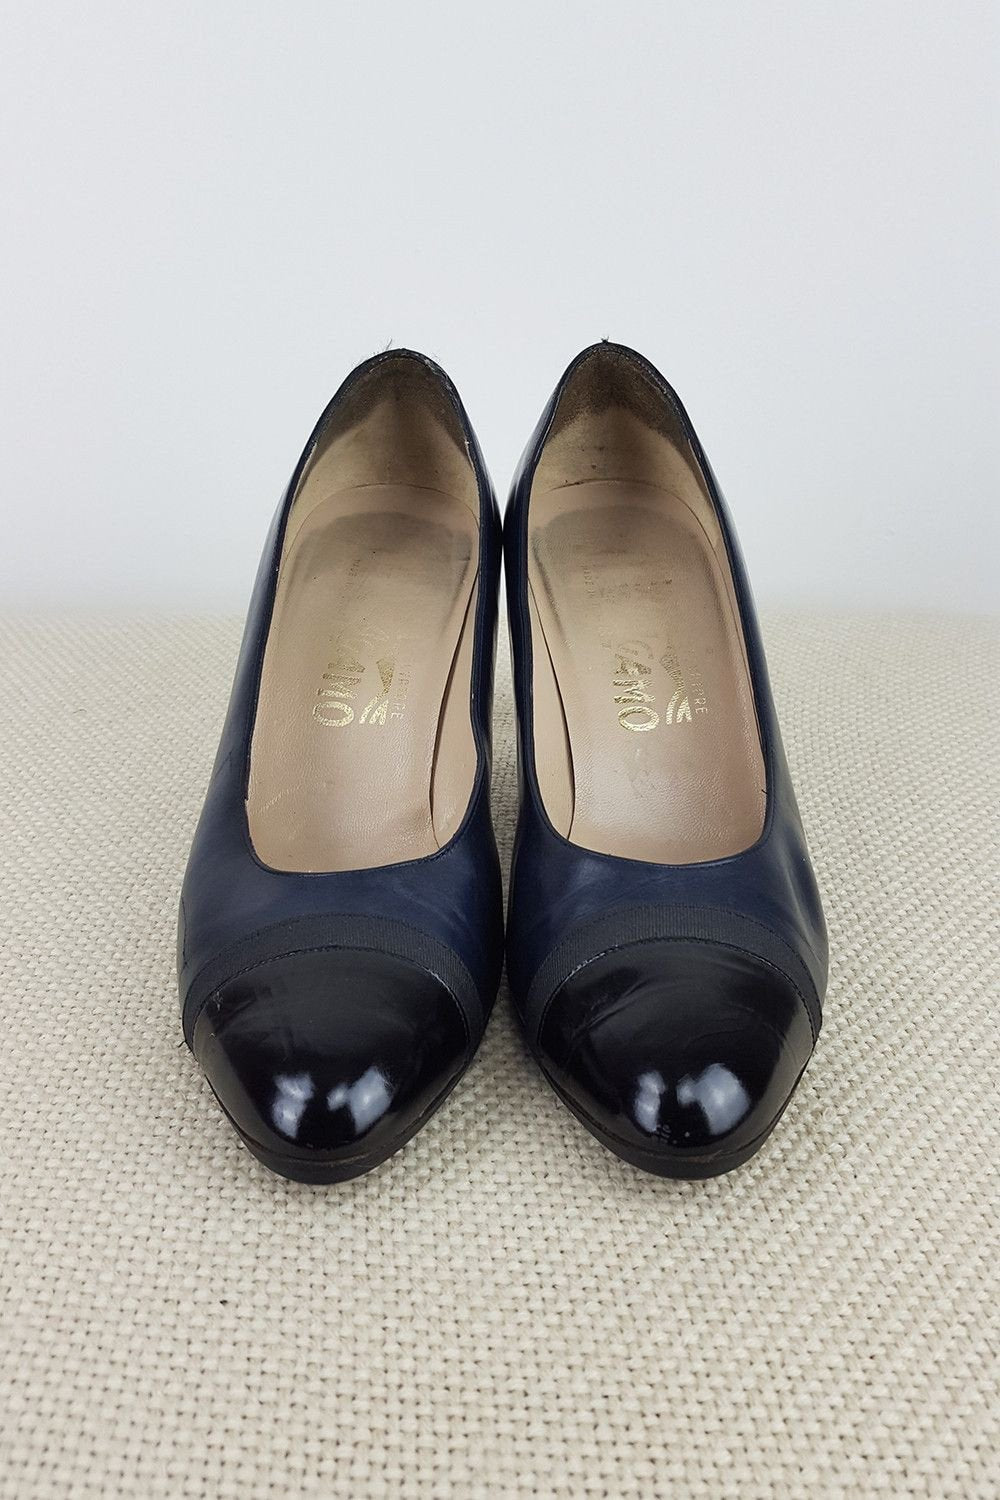 VINTAGE SALVATORE FERRAGAMO Blue and Black Leather Pumps (6M)-Salvatore Ferragamo-The Freperie